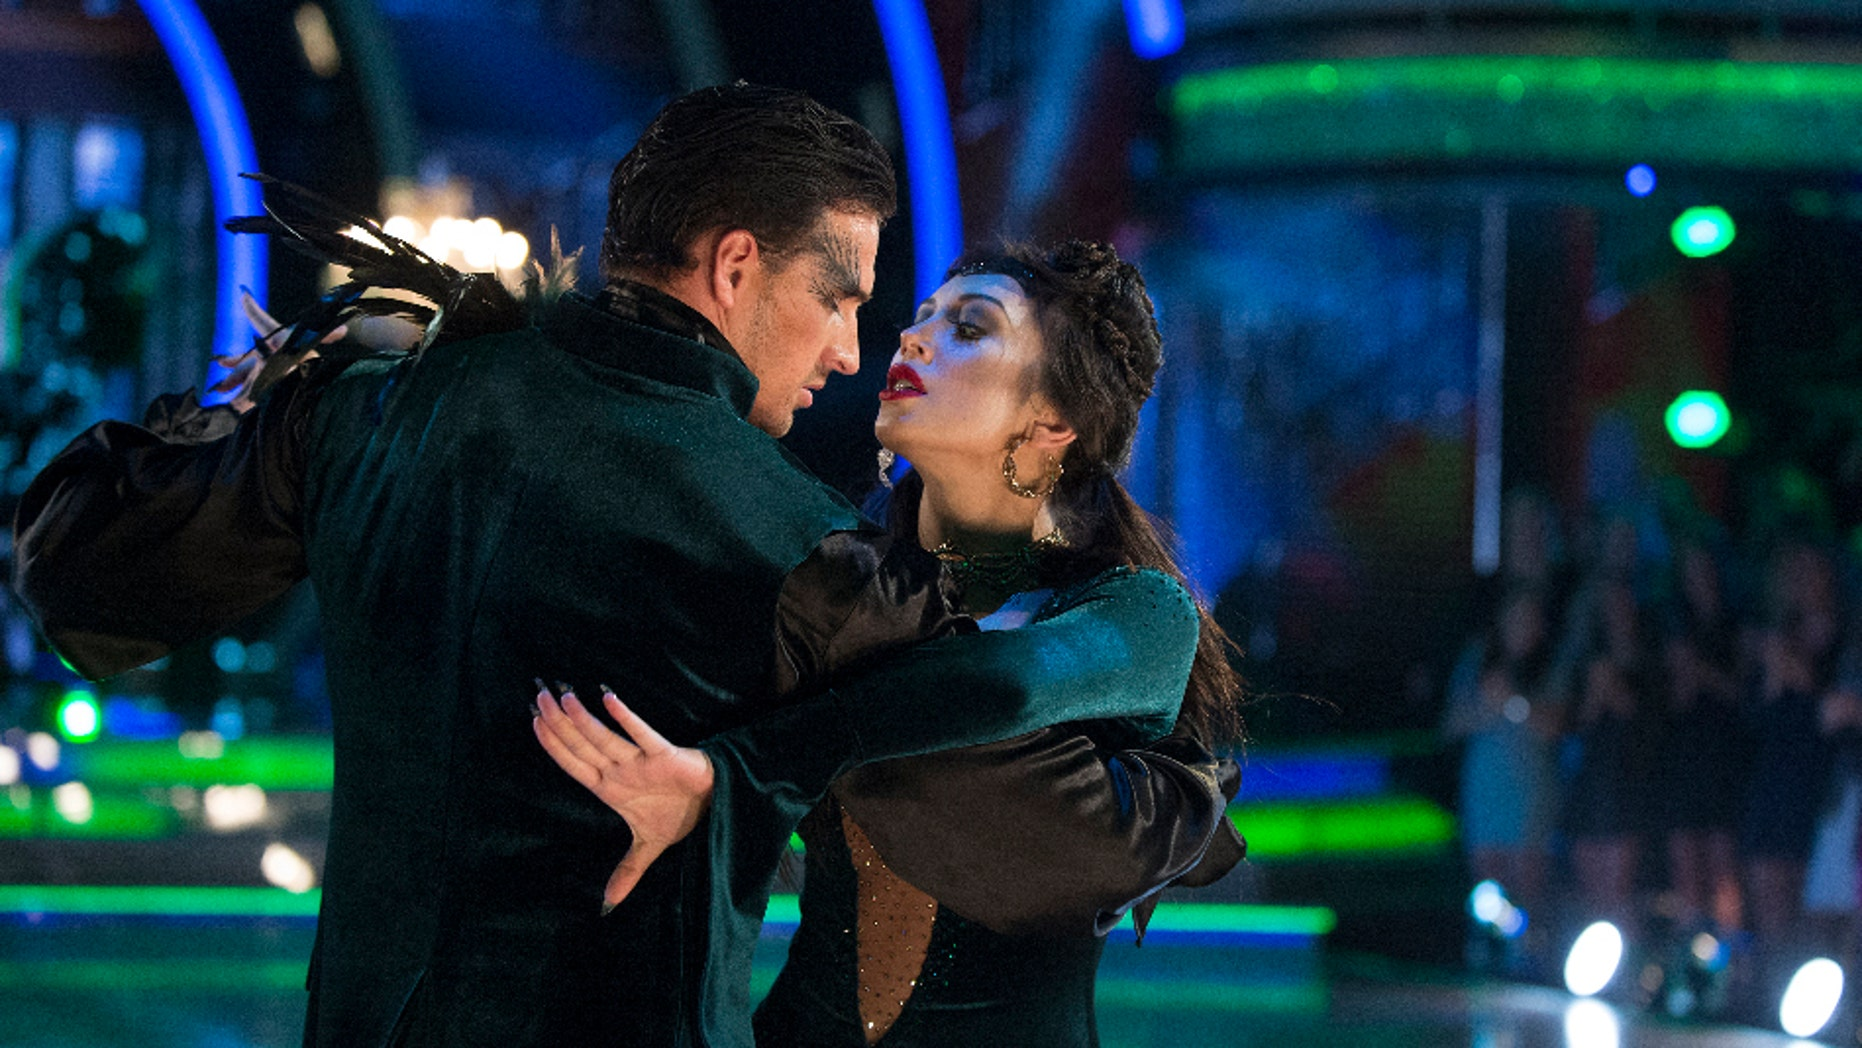 DANCING WITH THE STARS - âEpisode 2308â - âDancing with the Starsâ treats viewers to a frightfully delightful night filled with chilling performances on MONDAY, OCTOBER 31 (8:00-10:01 p.m. EDT). (ABC/Eric McCandless)RYAN LOCHTE, CHERYL BURKE